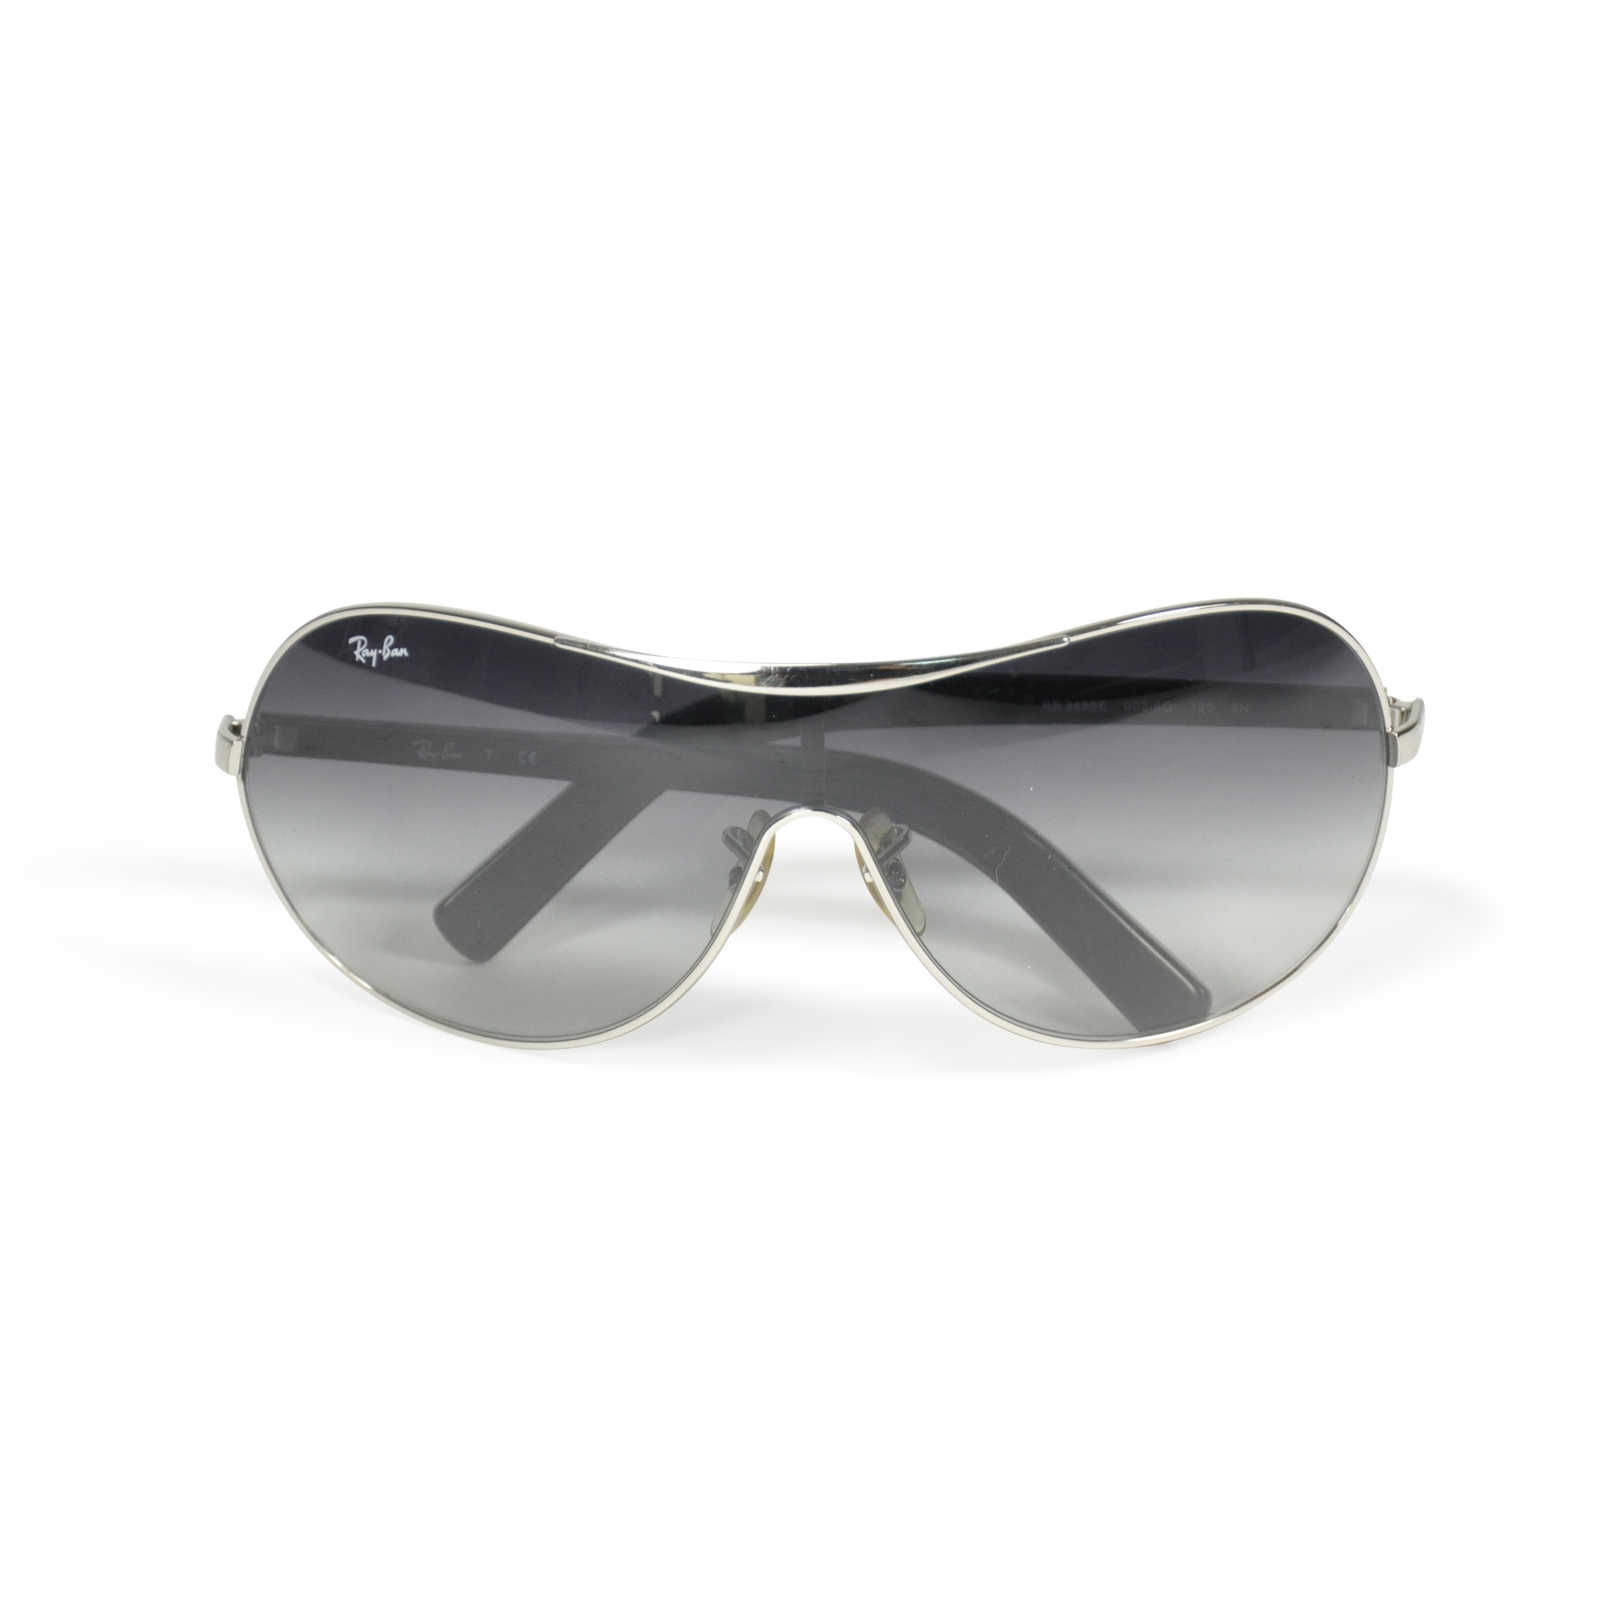 Authentic Hand Ray Ban Wrap Aviator-style